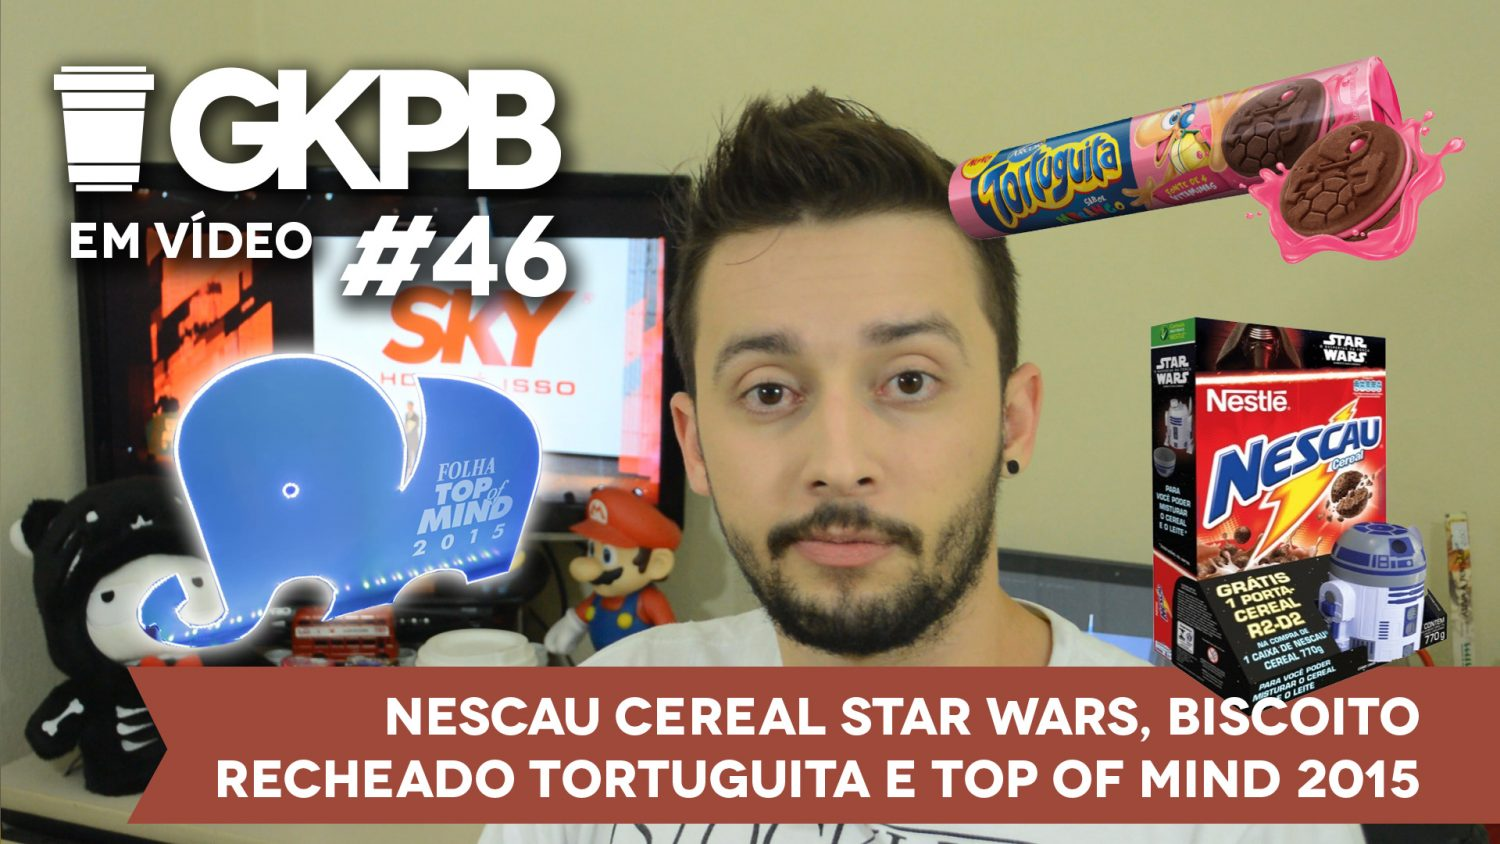 gkpb-em-video-46-nescau-cereal-star-wars-biscoito-recheado-tortuguita-top-of-mind-2015-blog-geek-publicitario